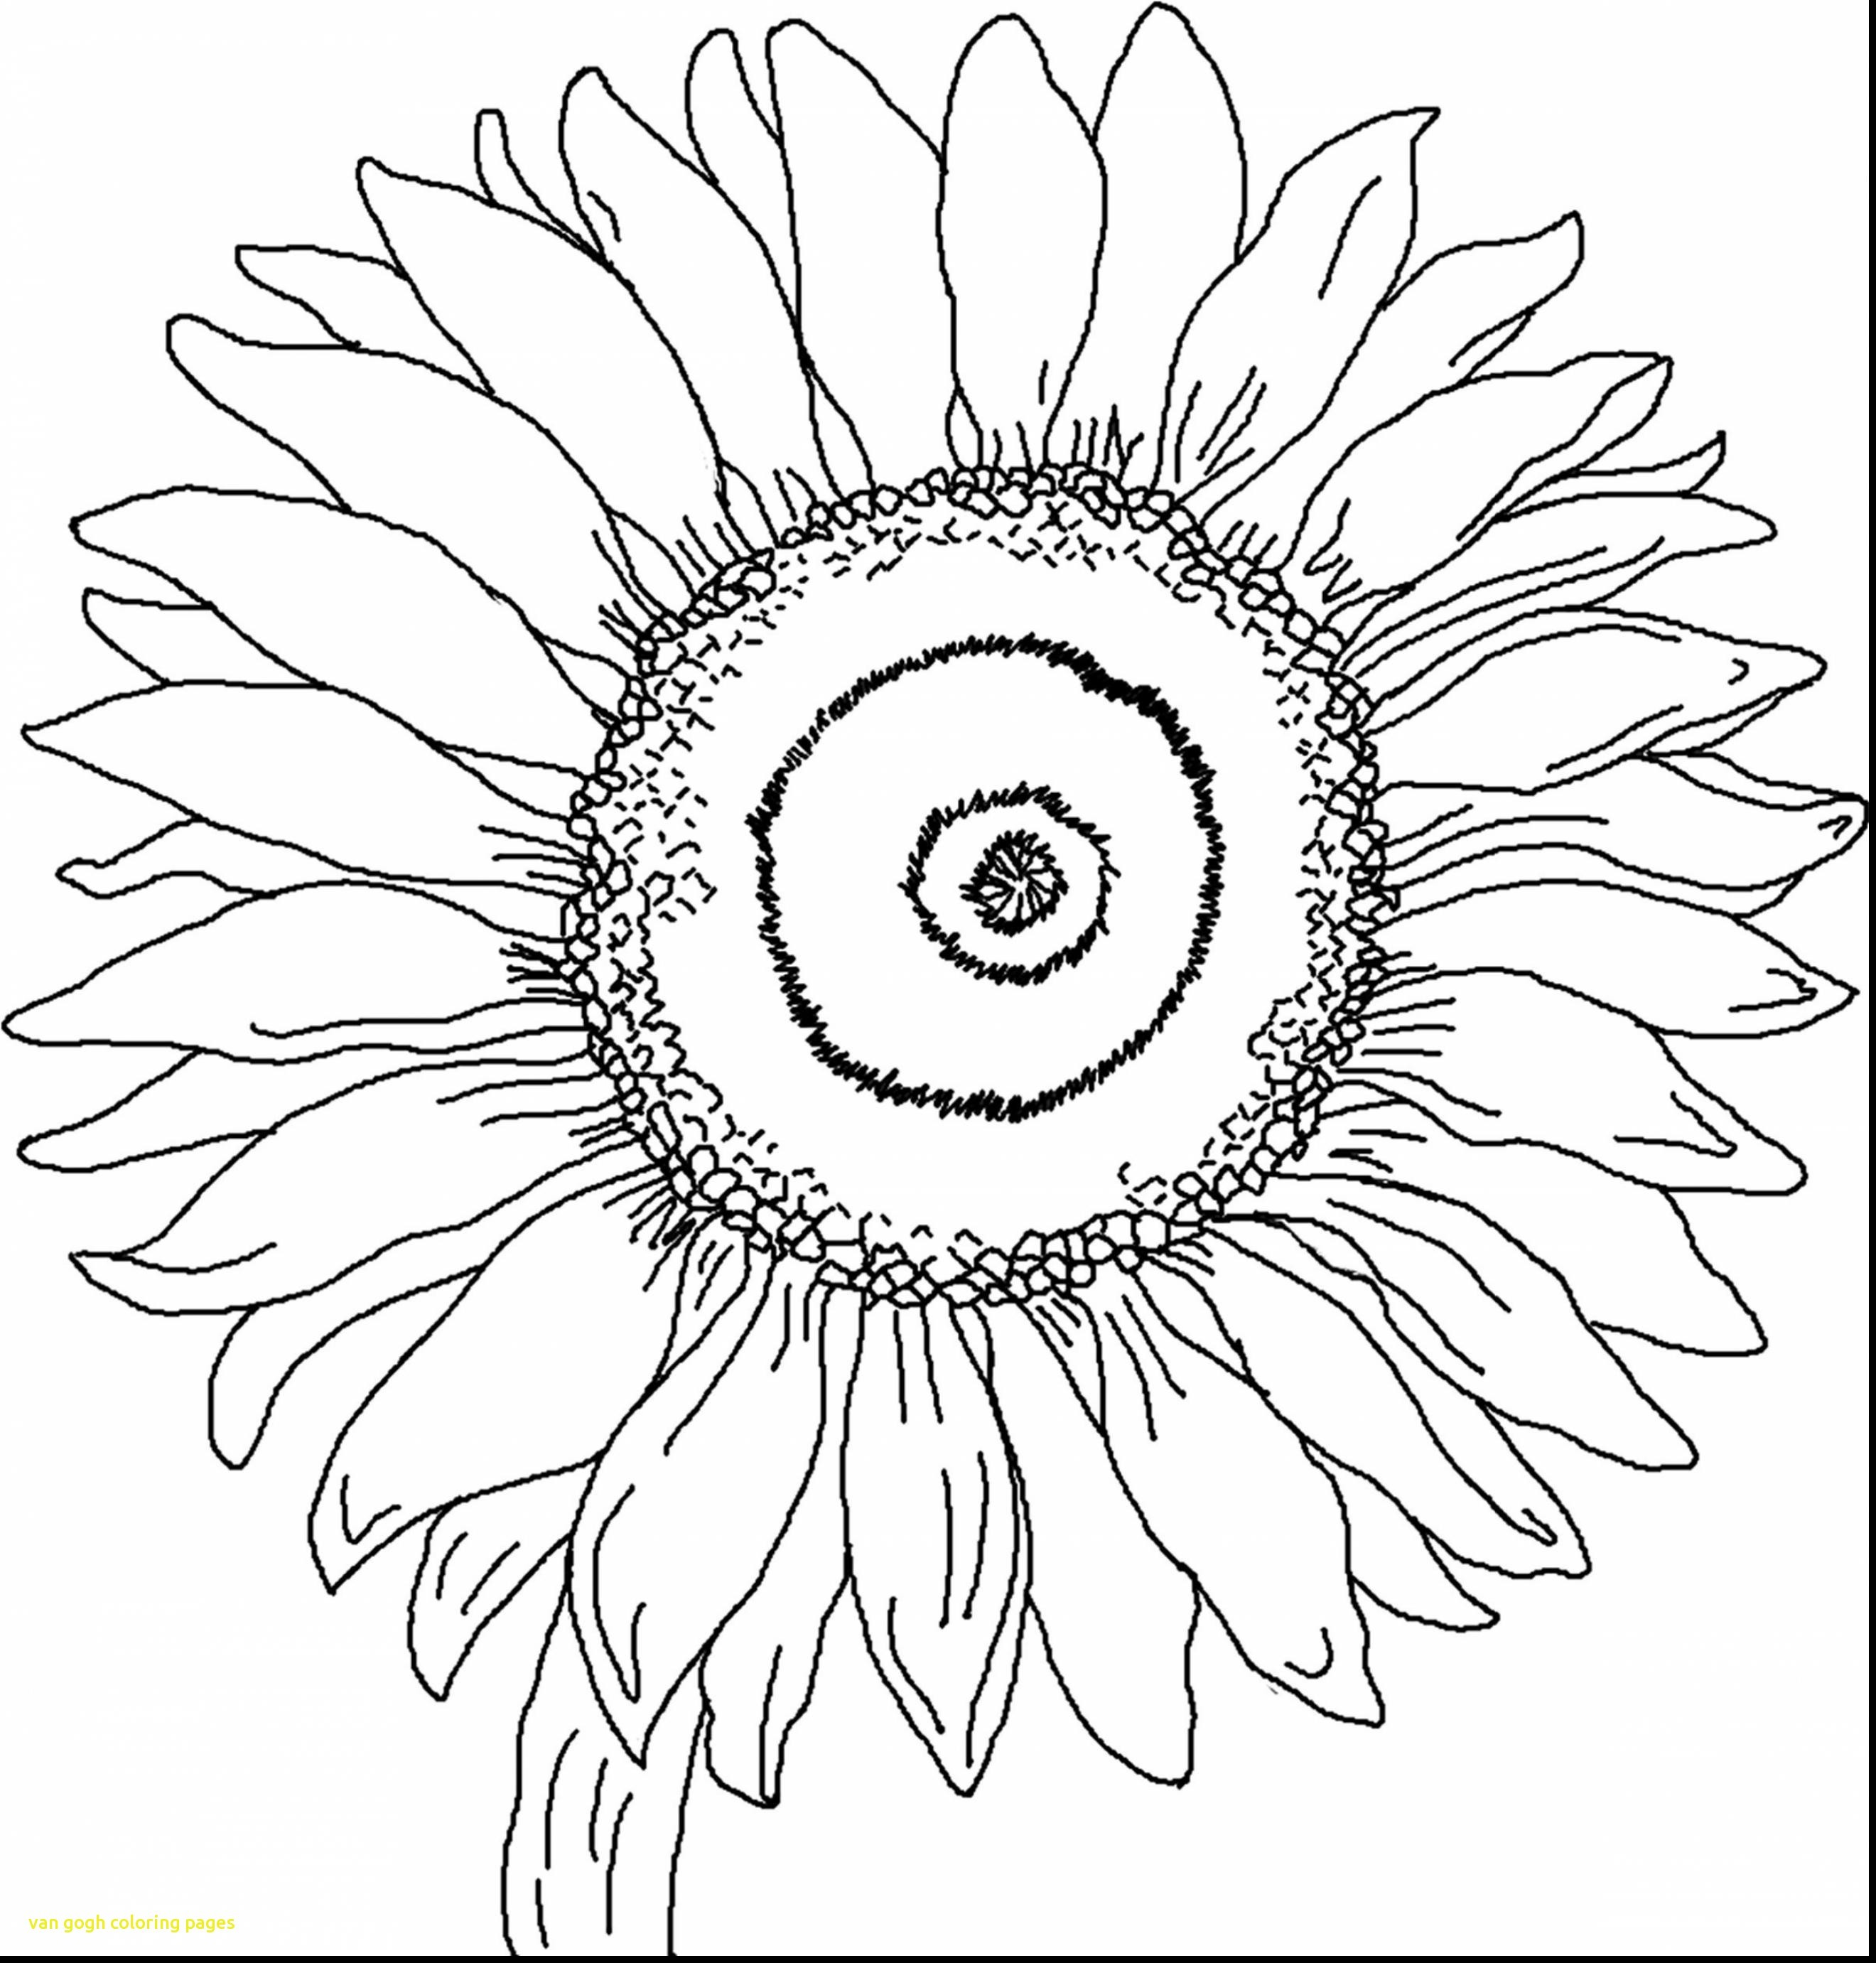 2640x2762 Best Of Coloring Pages Olive Tree New Van Gogh Coloring Pages